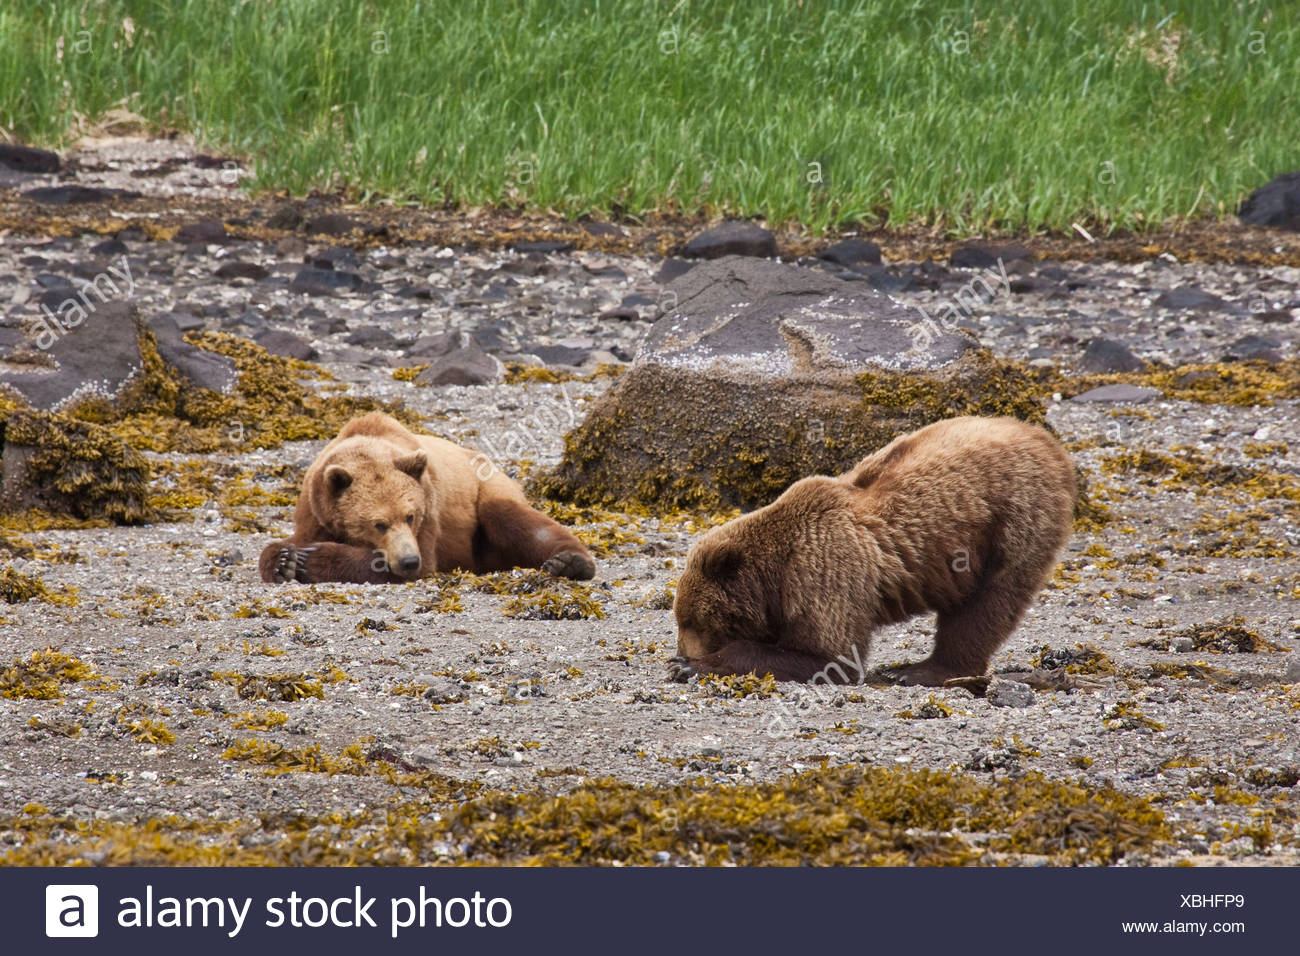 Brown bear digs for clams  while a second bear rests on the beach, Geographic Harbor, Katmai National Park, Southwest Alaska - Stock Image